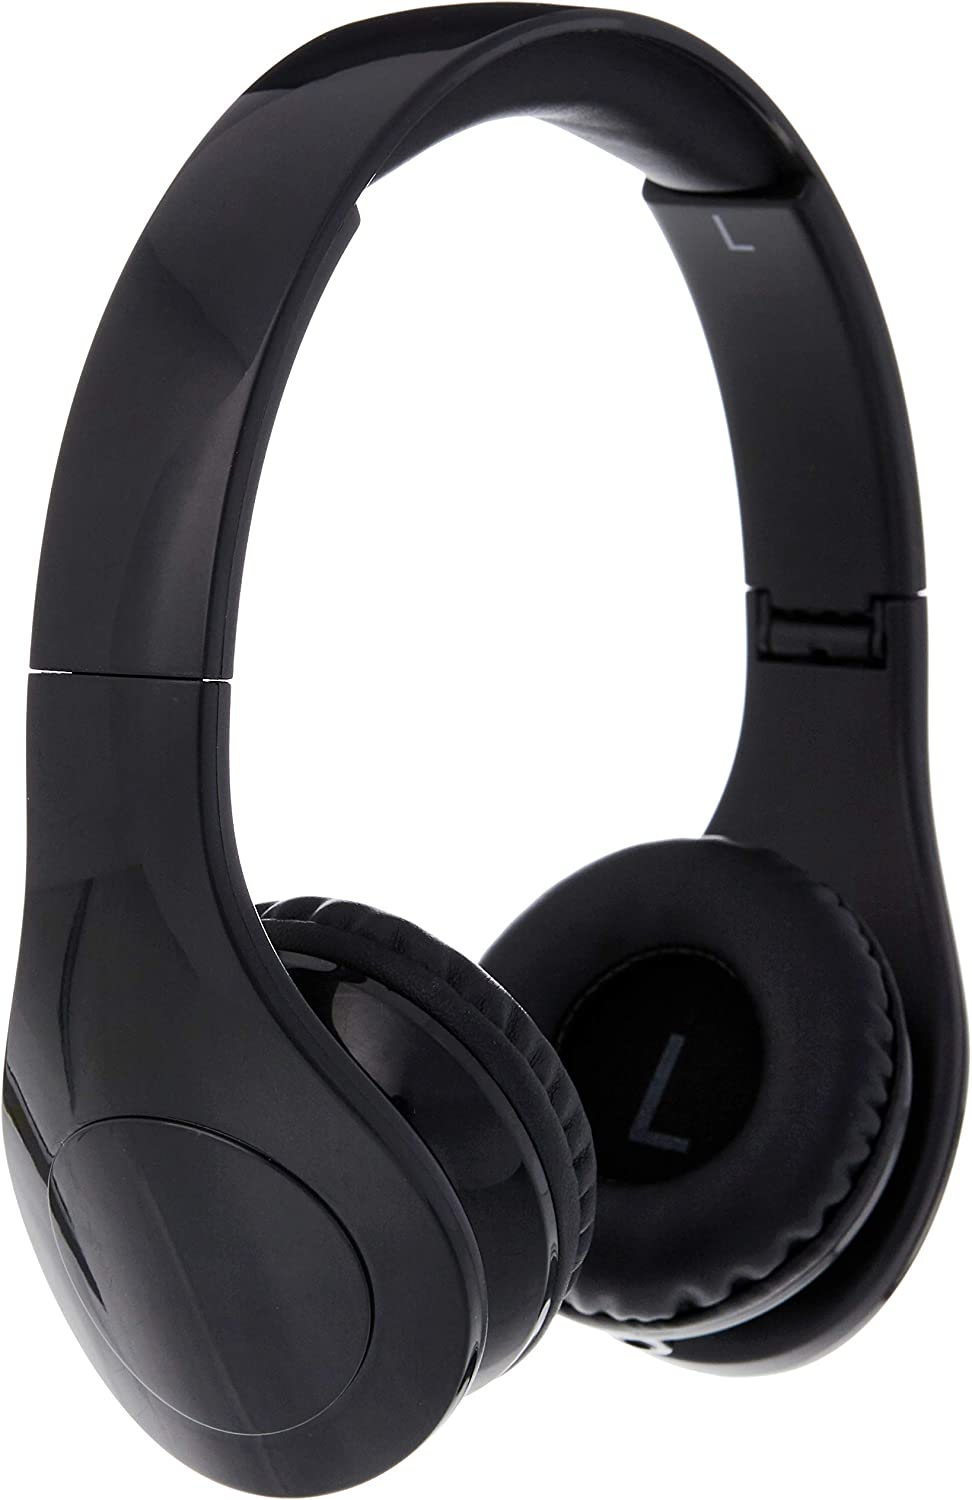 AmazonBasics Volume Limited Wired Over-Ear Headphones for Kids with Two Ports for Sharing, Black